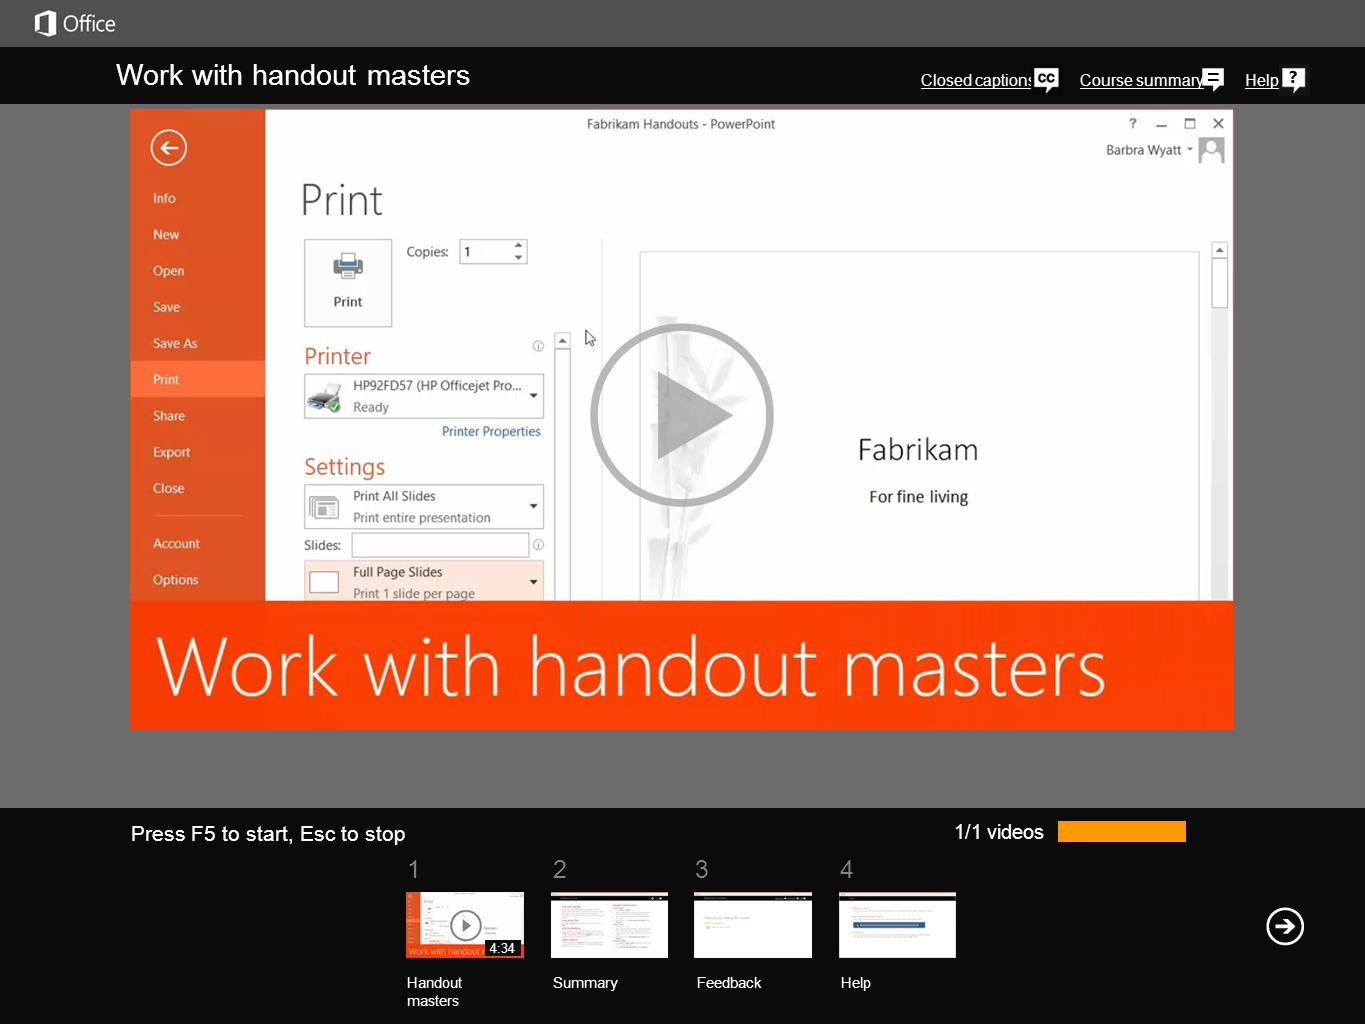 1234 Course summaryHelp Work with handout masters Closed captions 1/1 videos Handout masters SummaryFeedback Help 4:34 Press F5 to start, Esc to stop When you want to print handouts in PowerPoint, you can choose most of the handout settings in Print view.